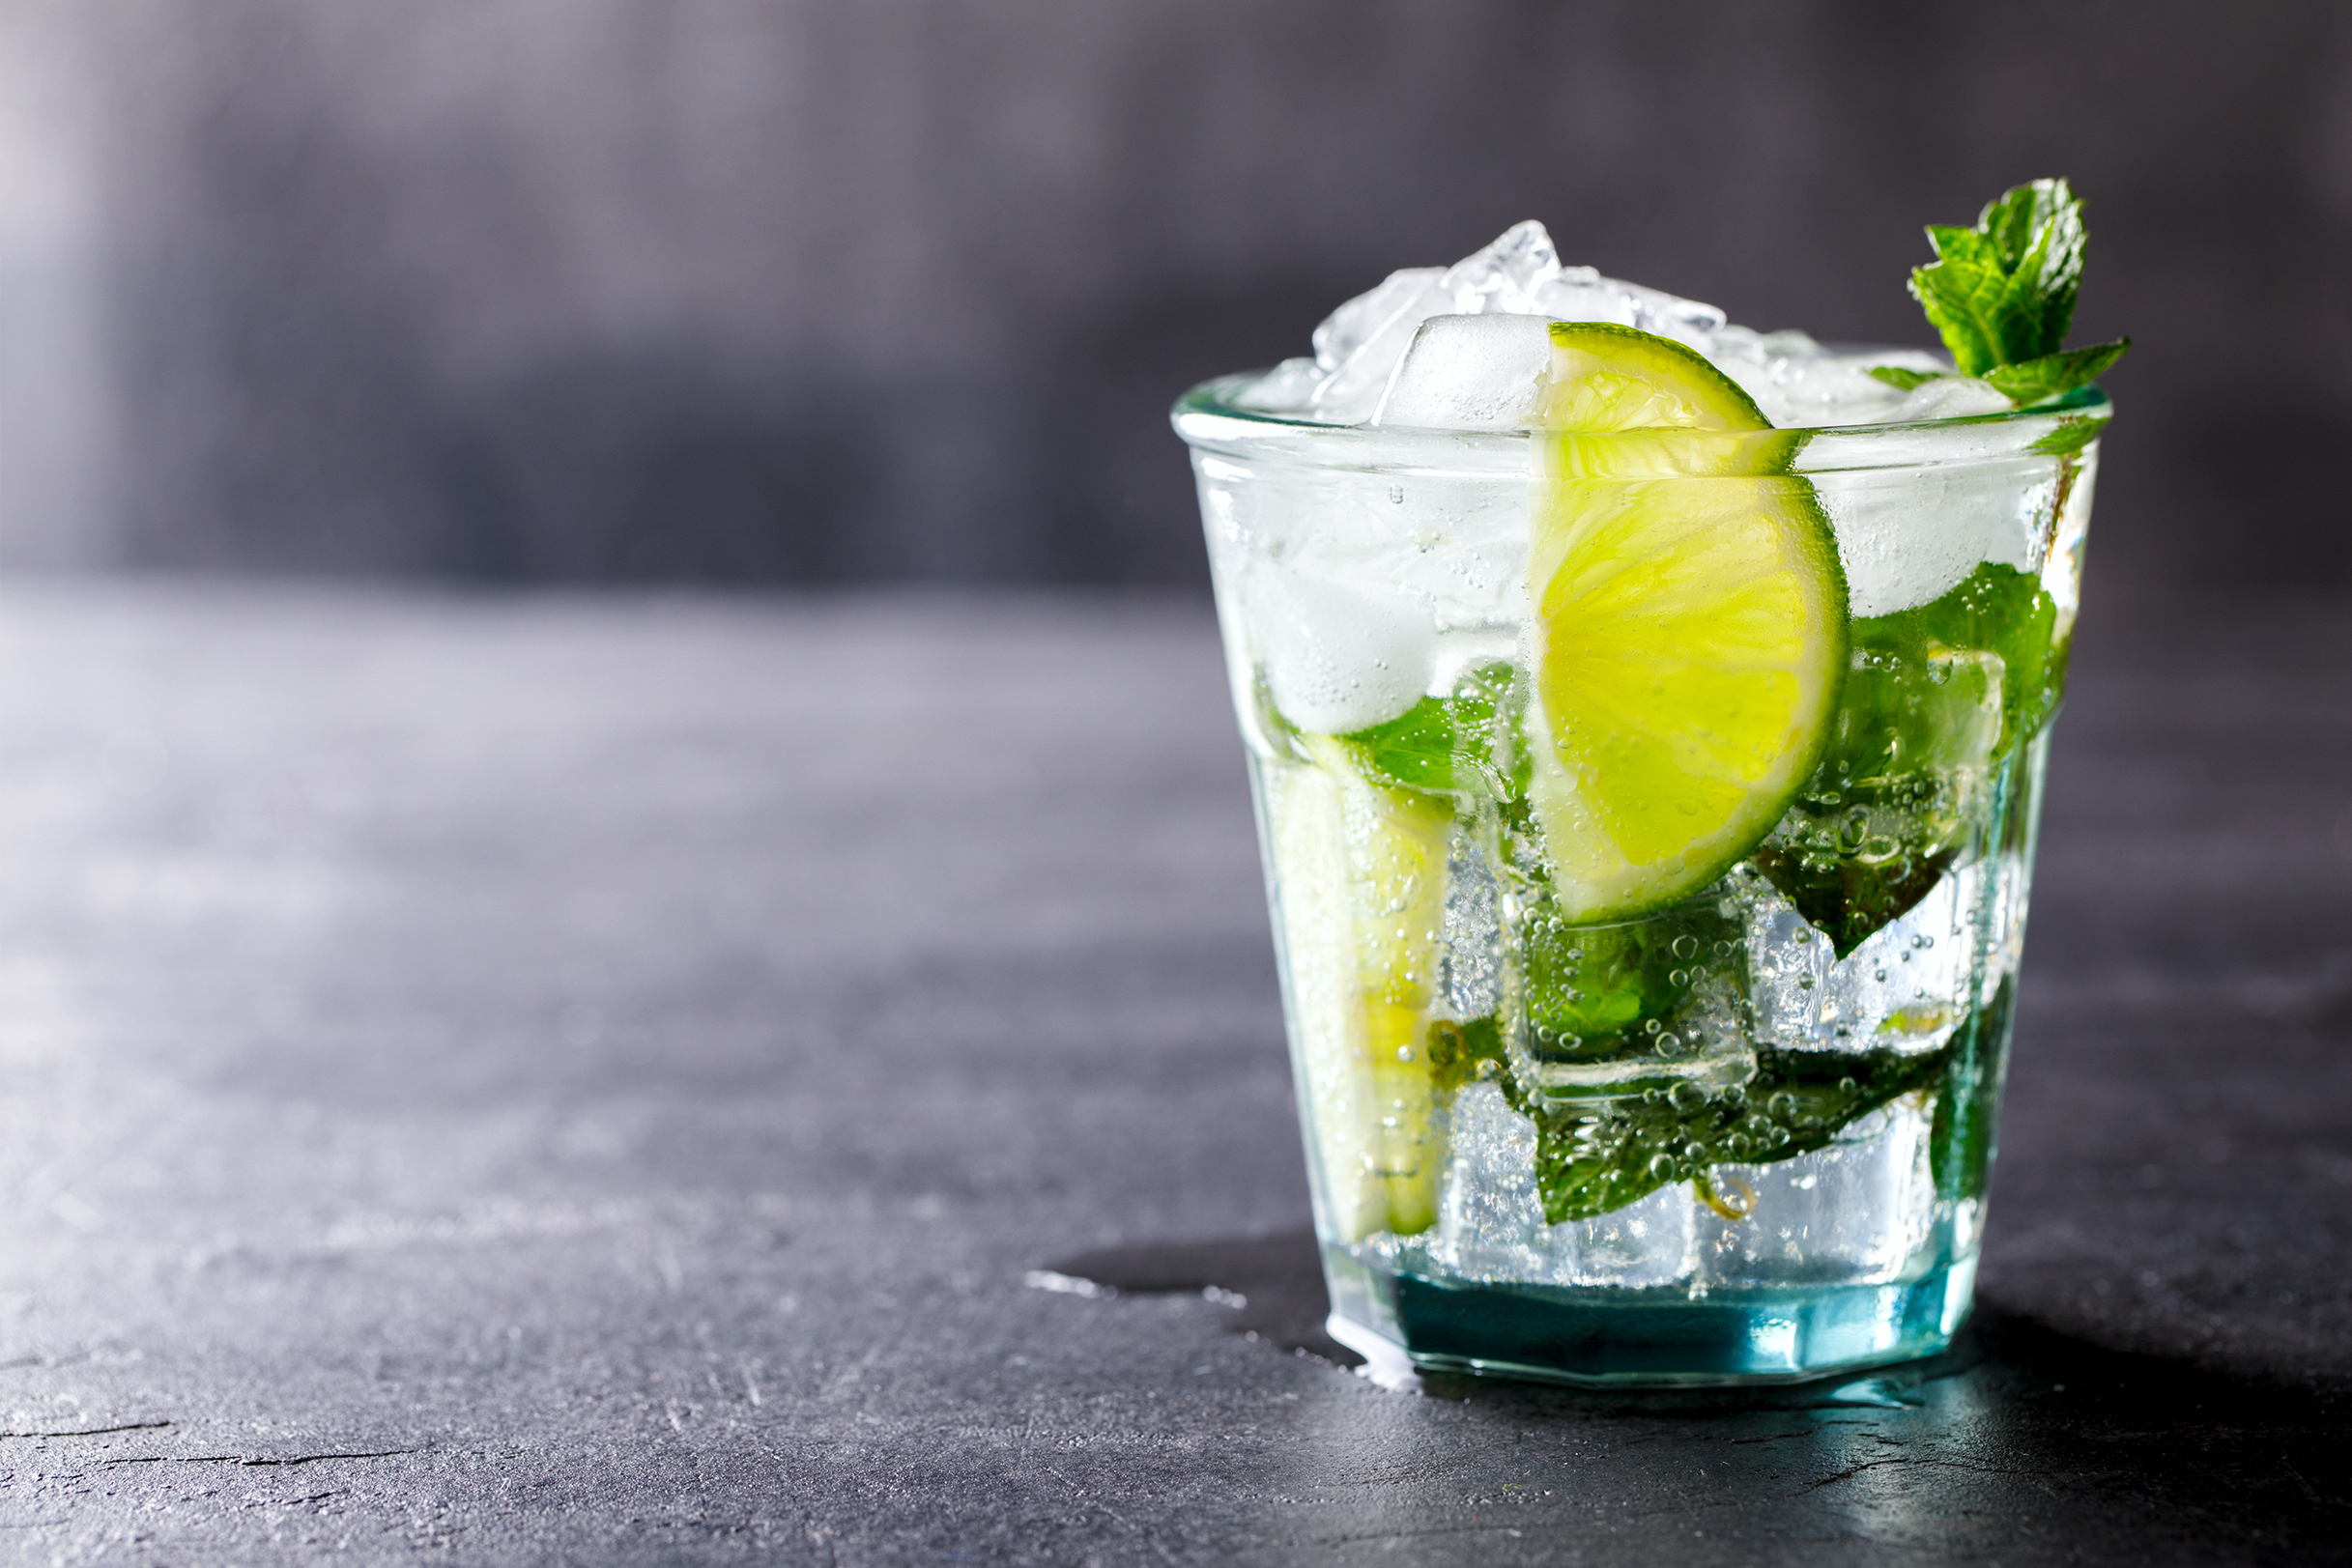 MOJITO - 50ml Streamertail Rum1/2 a Lime (cut into 3-4 wedges)1 tsp Sugar10-15 mint leavesSoda WaterPut the lime wedges and sugar in the glass and muddle (mash) them together. Clap the mint leaves and add to the Lime/sugar juice. Fill half the glass with ice (crushed if you can) and add the Streamertail then stir. Top up with more ice, Soda and a sprig of mint.